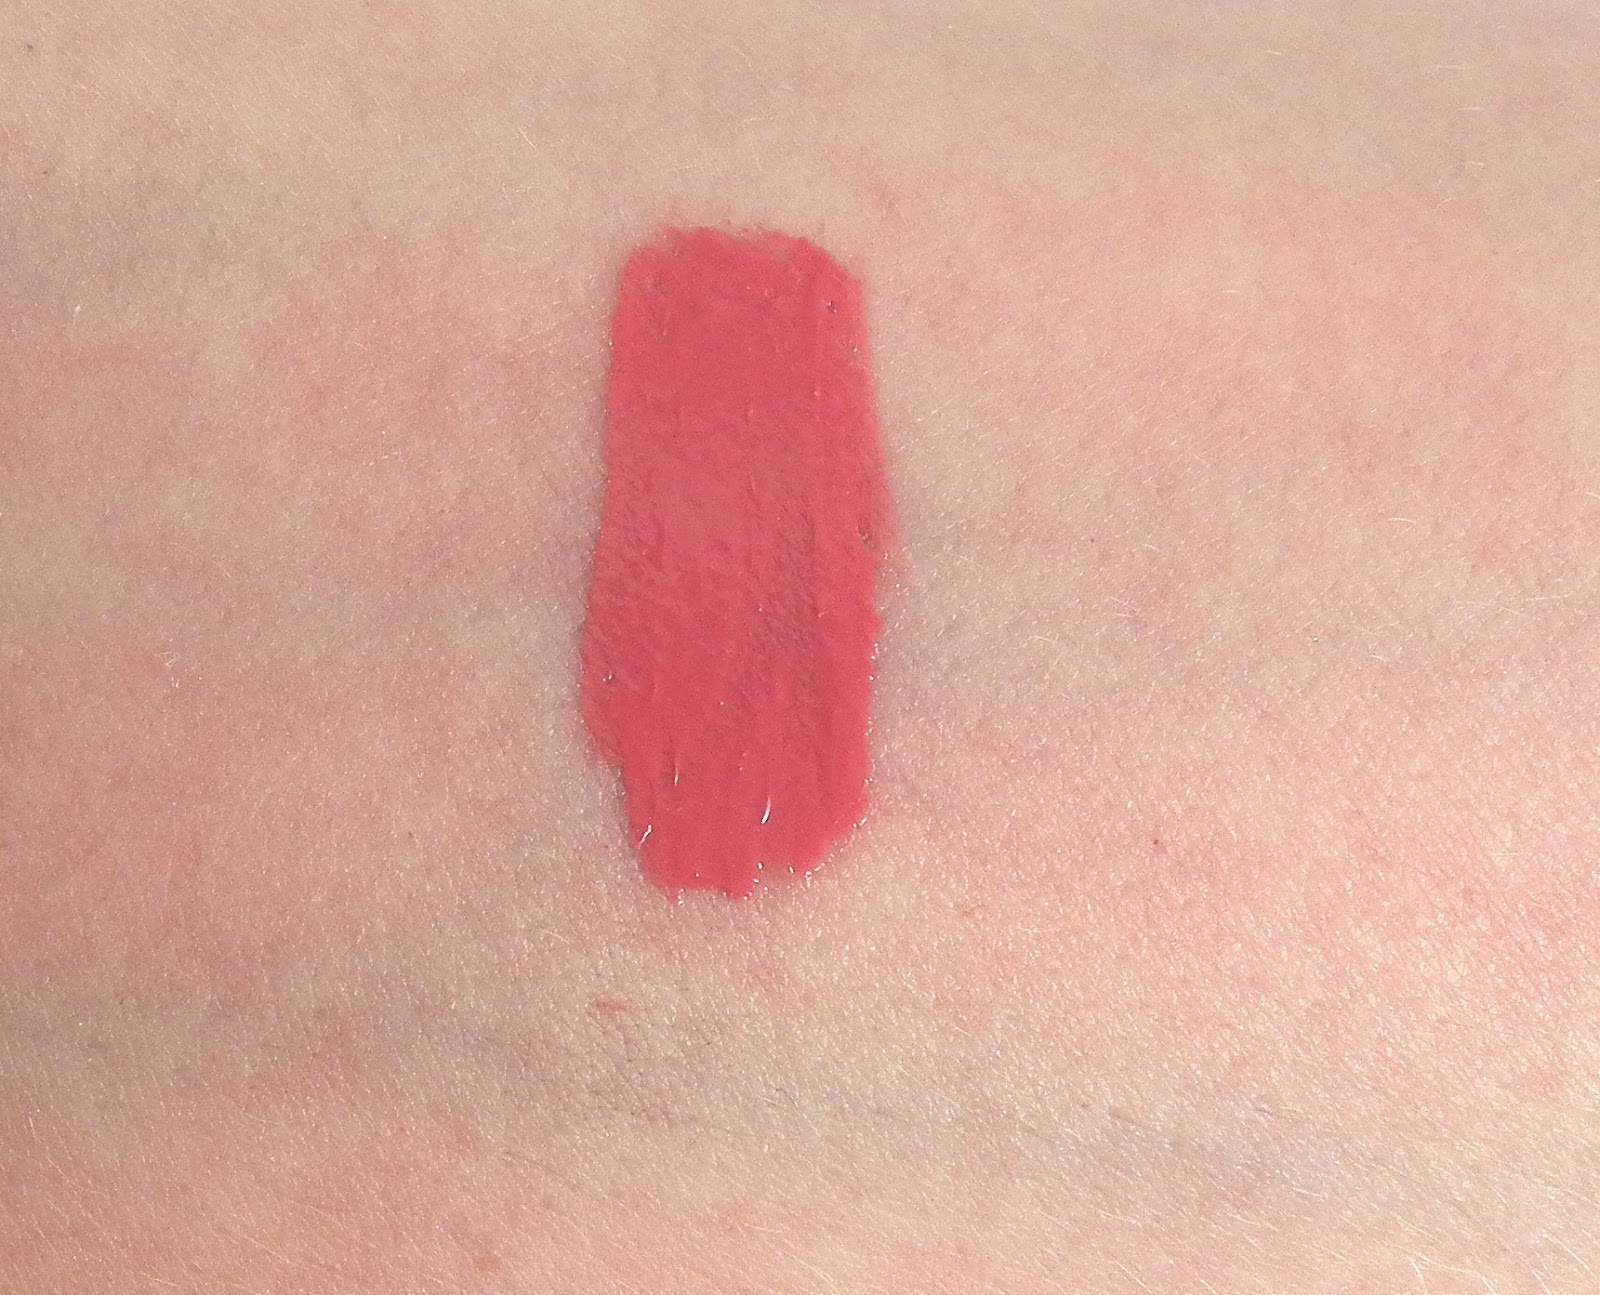 Melting Pout Matte Liquid Lipstick by Covergirl #18